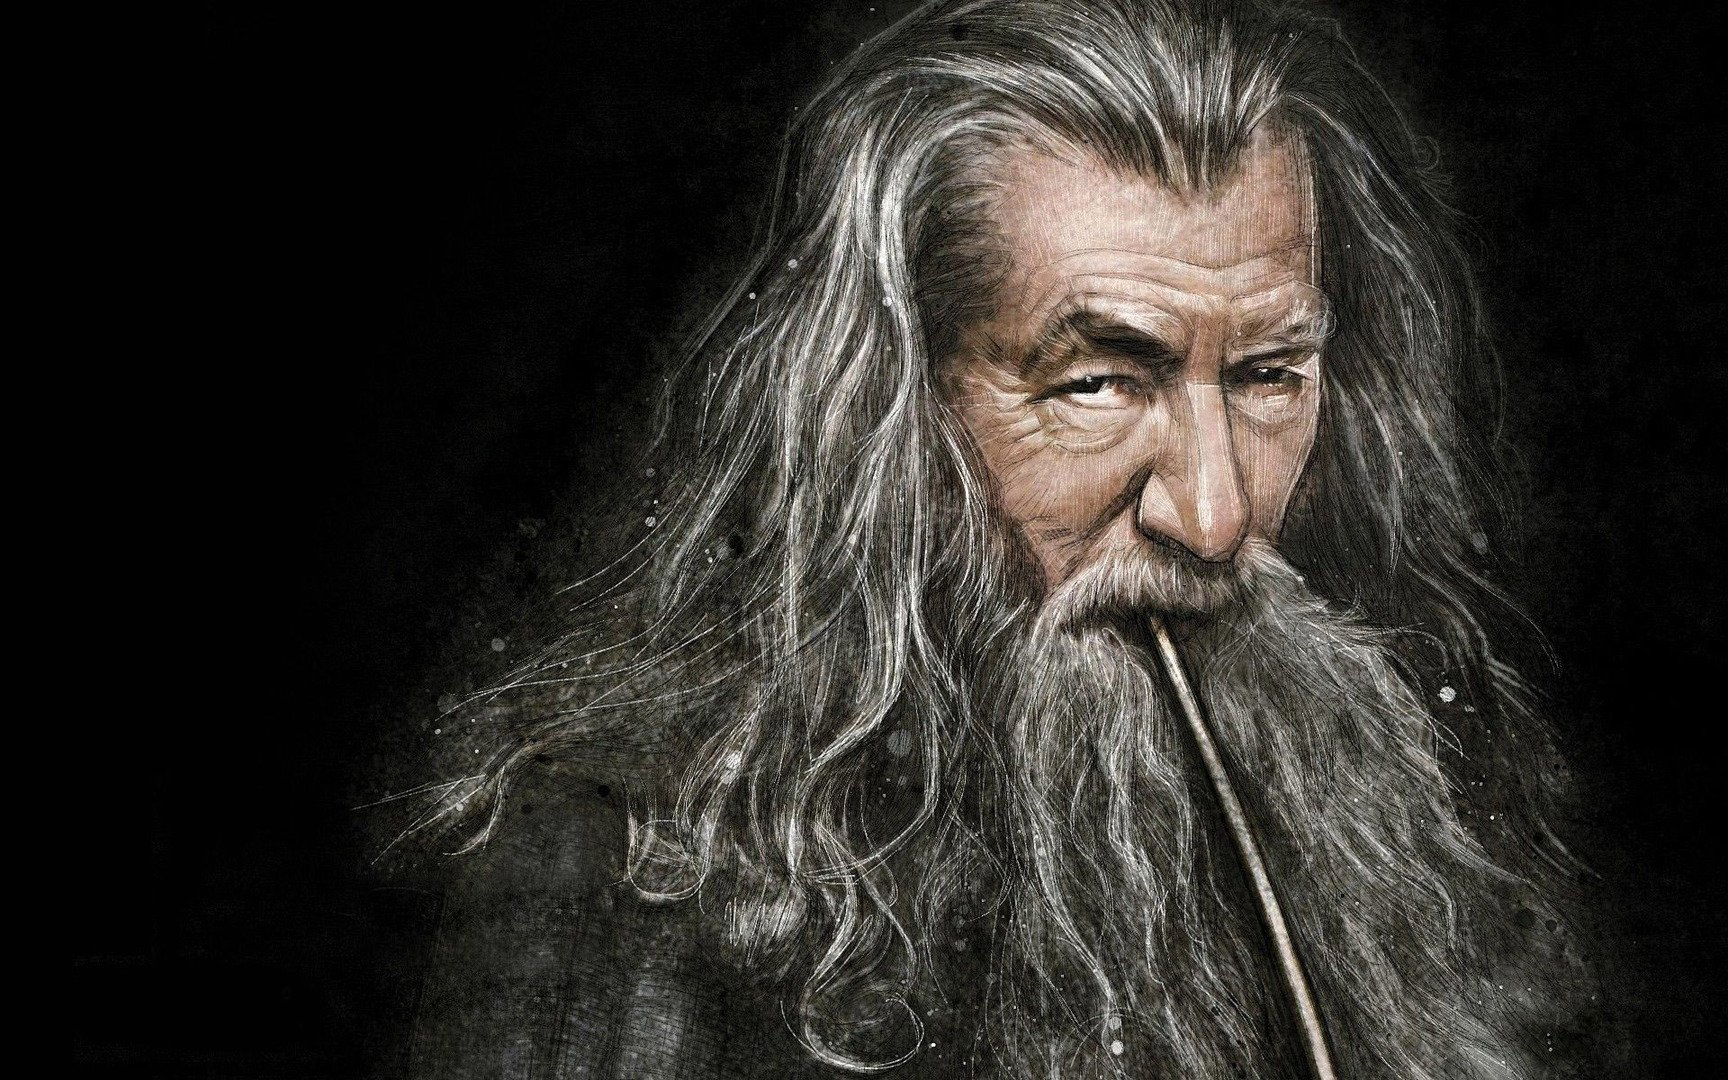 Download Gandalf   The Lord of the Rings wallpaper 1728x1080